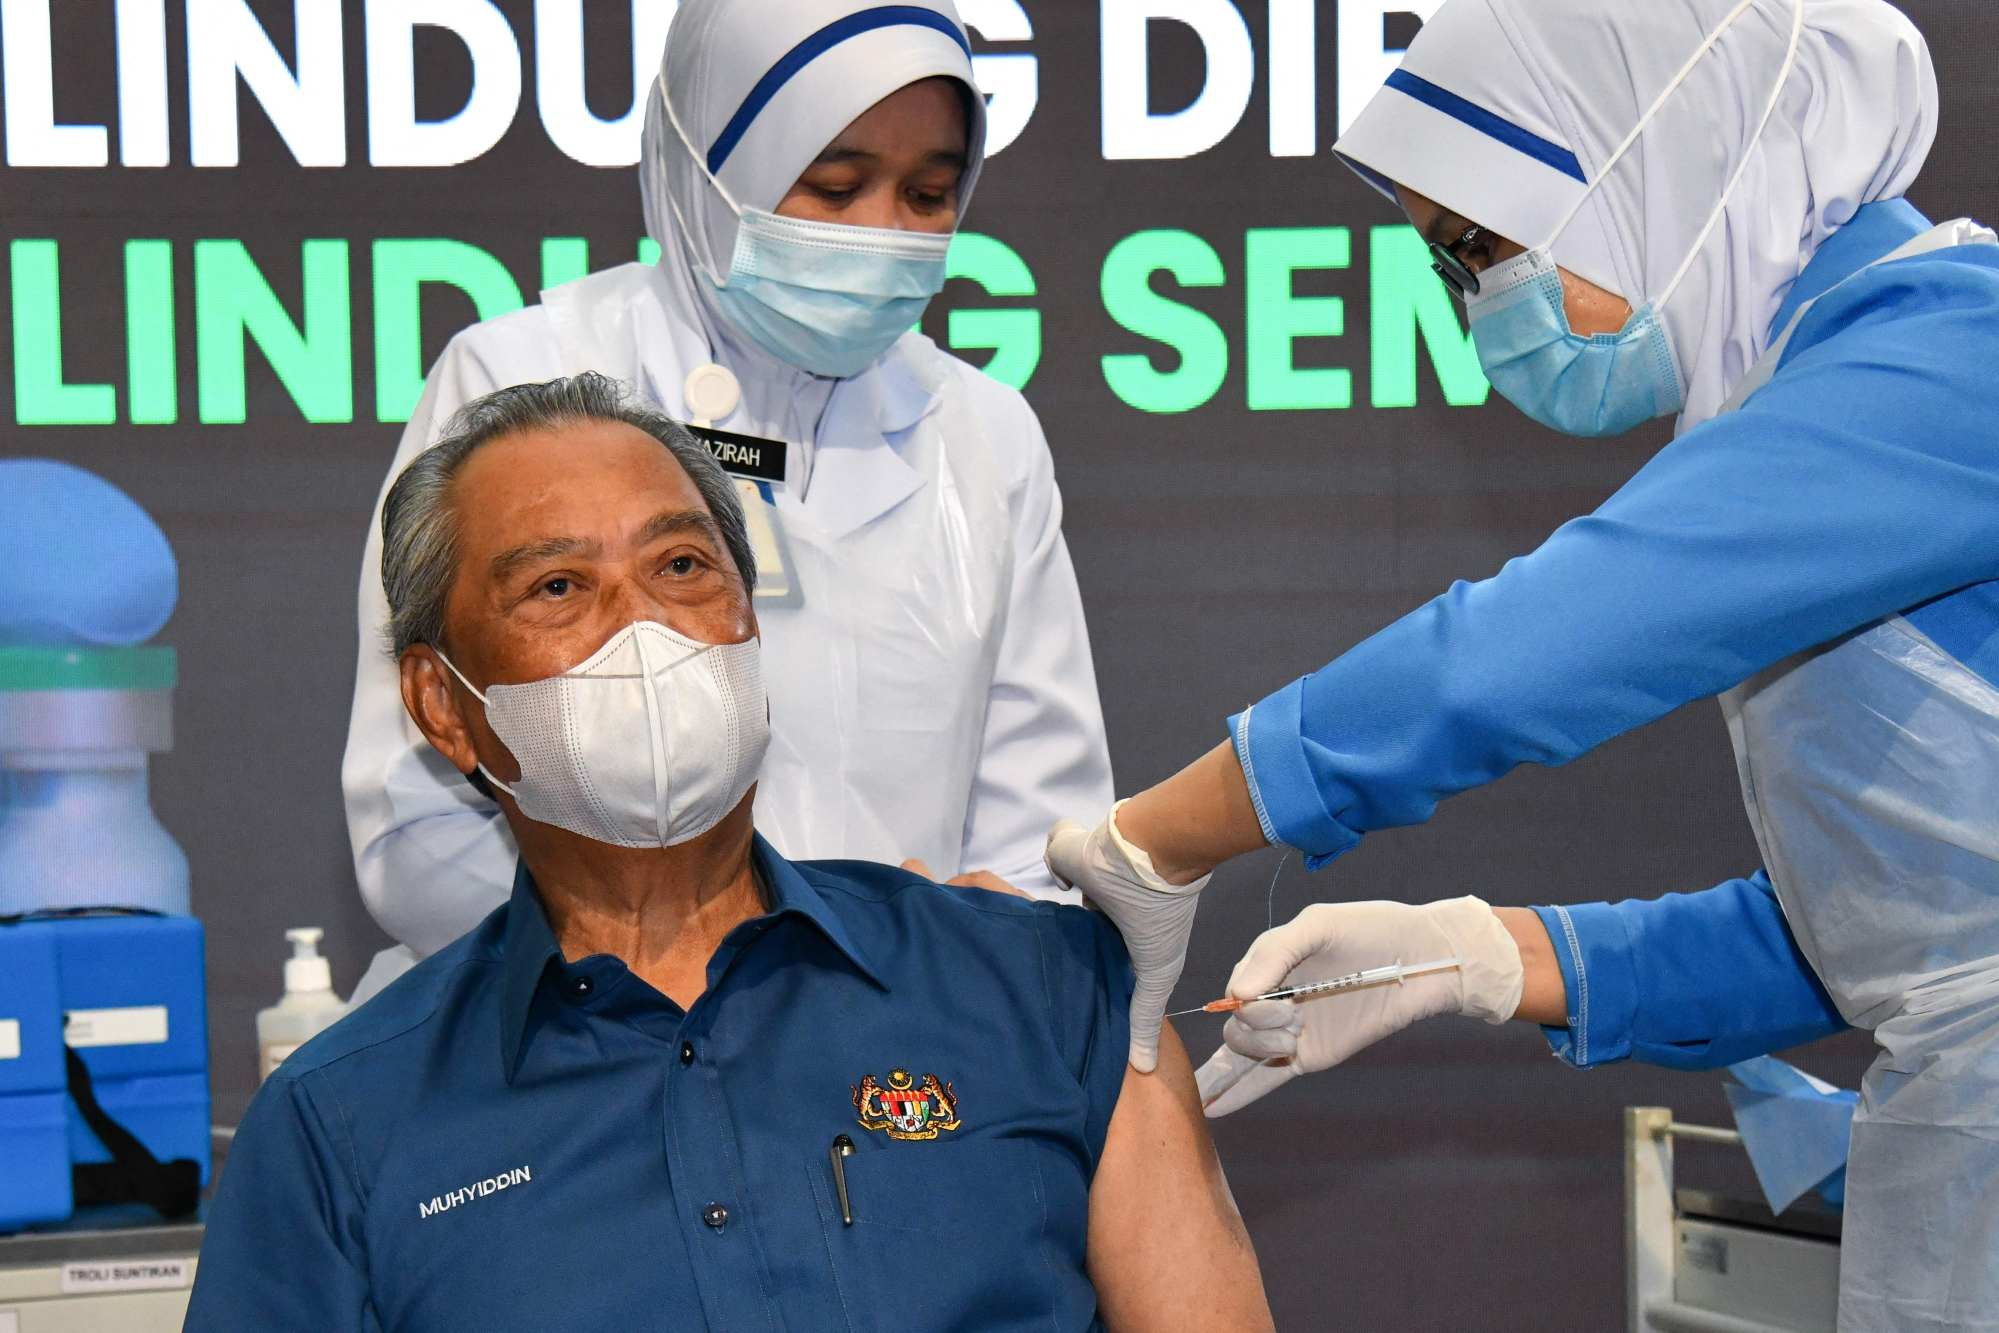 Malaysian Prime Minister Muhyiddin Yassin receives the first dose of the Pfizer Covid-19 vaccine at a government clinic in Putrajaya. Photo: AFP